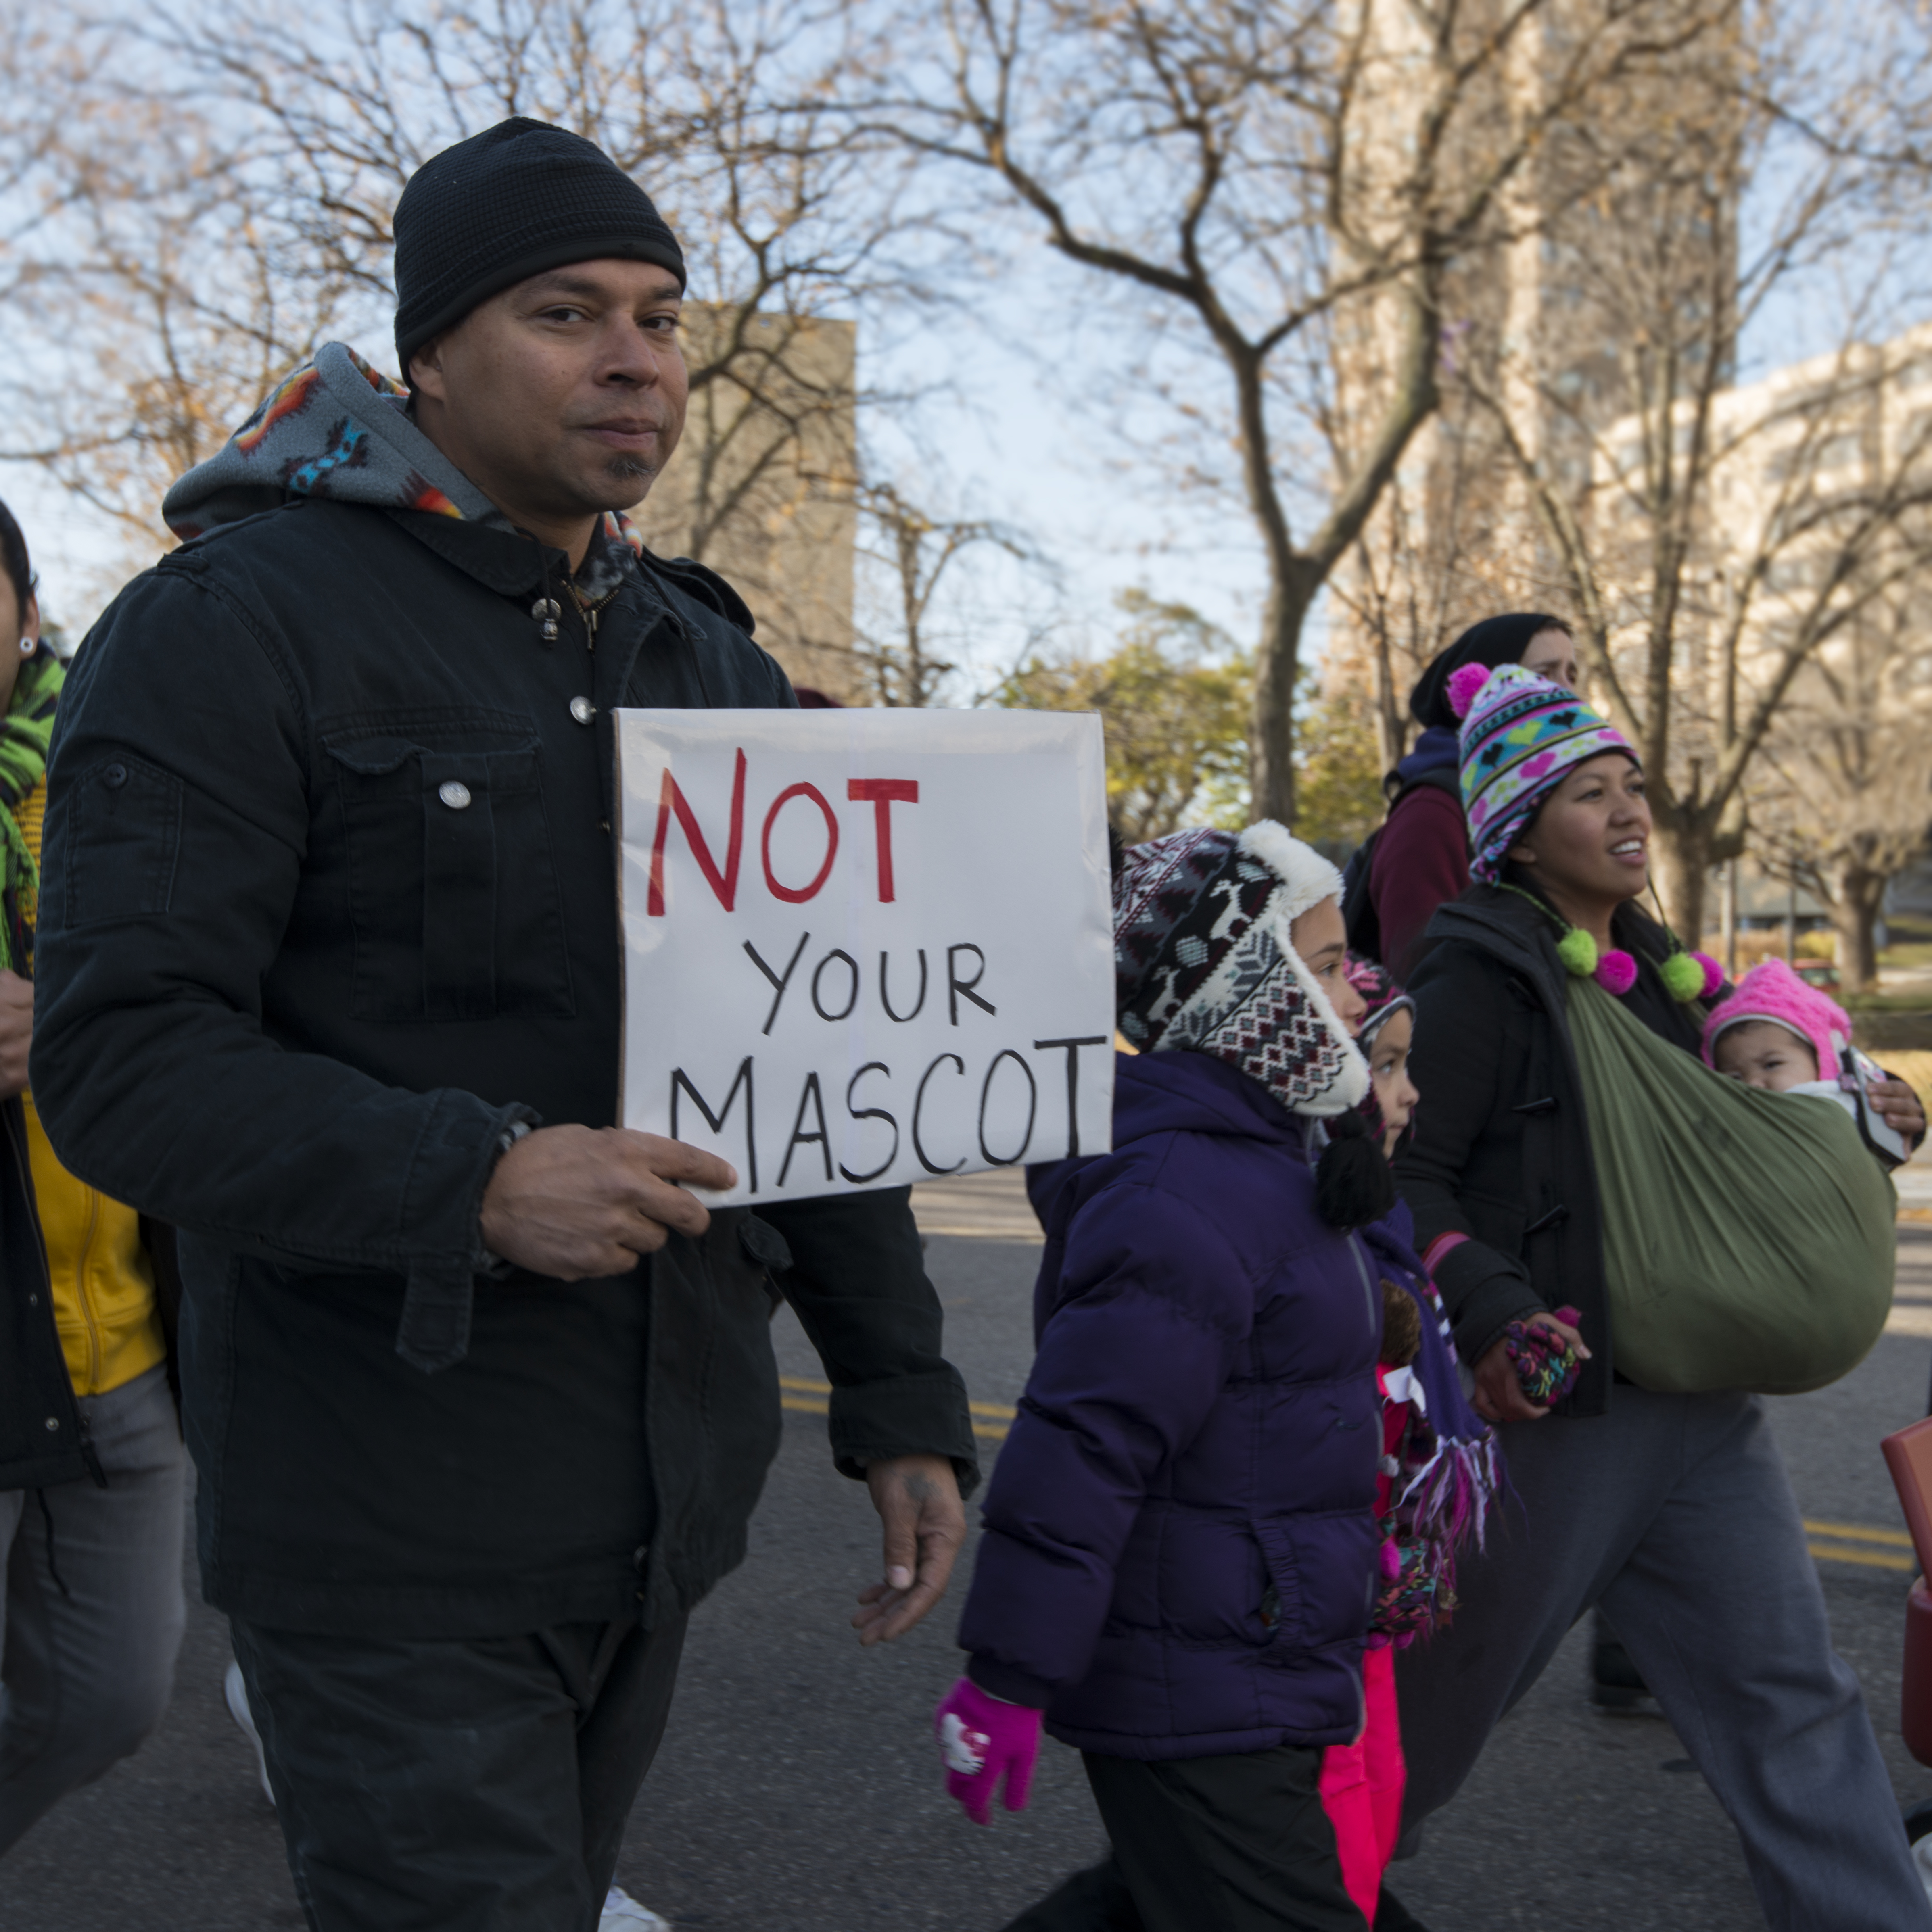 """Protestor marching in street holding sign that reads """"Not Your Mascot."""""""